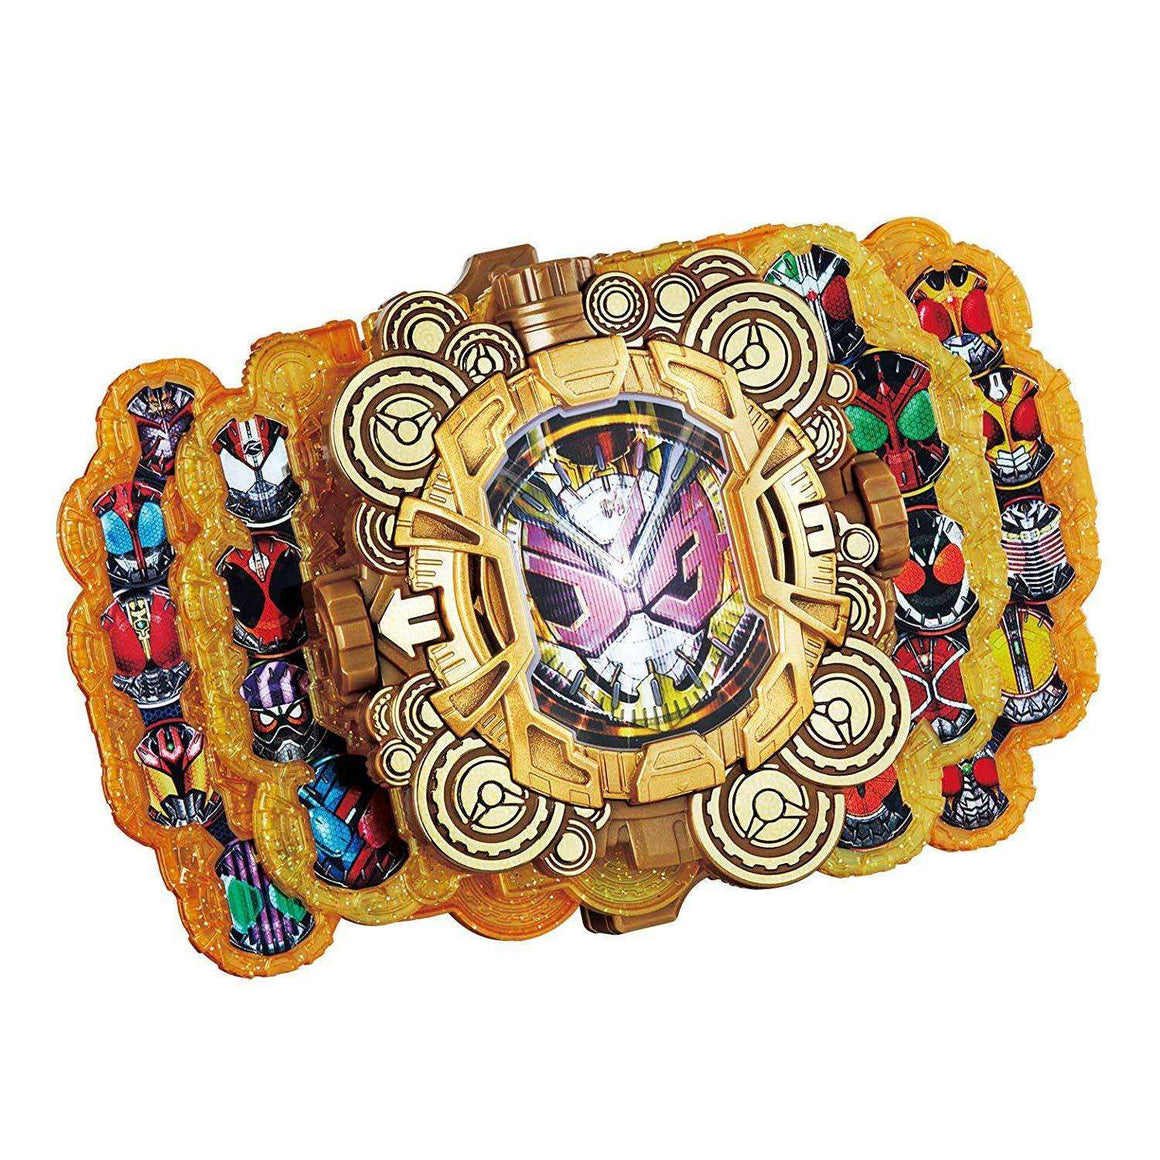 CSTOYS INTERNATIONAL:Kamen Rider Zi-O: DX Grand Zi-O Ride Watch